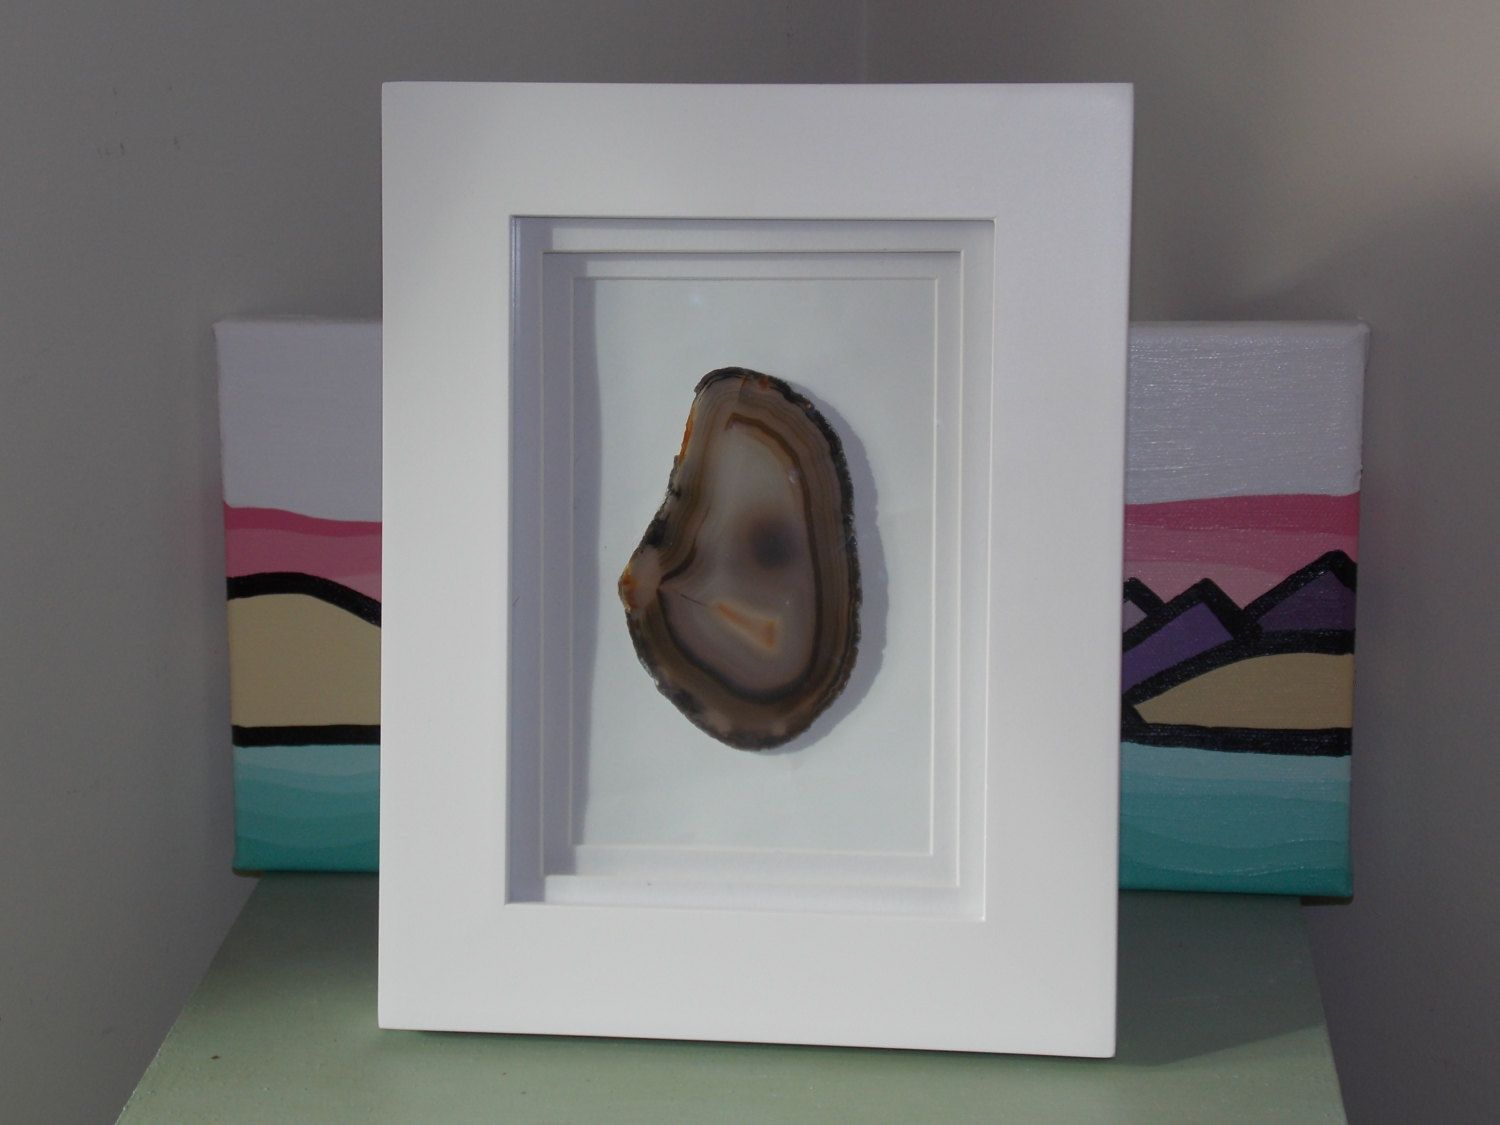 Framed Agate Slice 5x7 Framed Agate Slice Geode Art Agate Slice